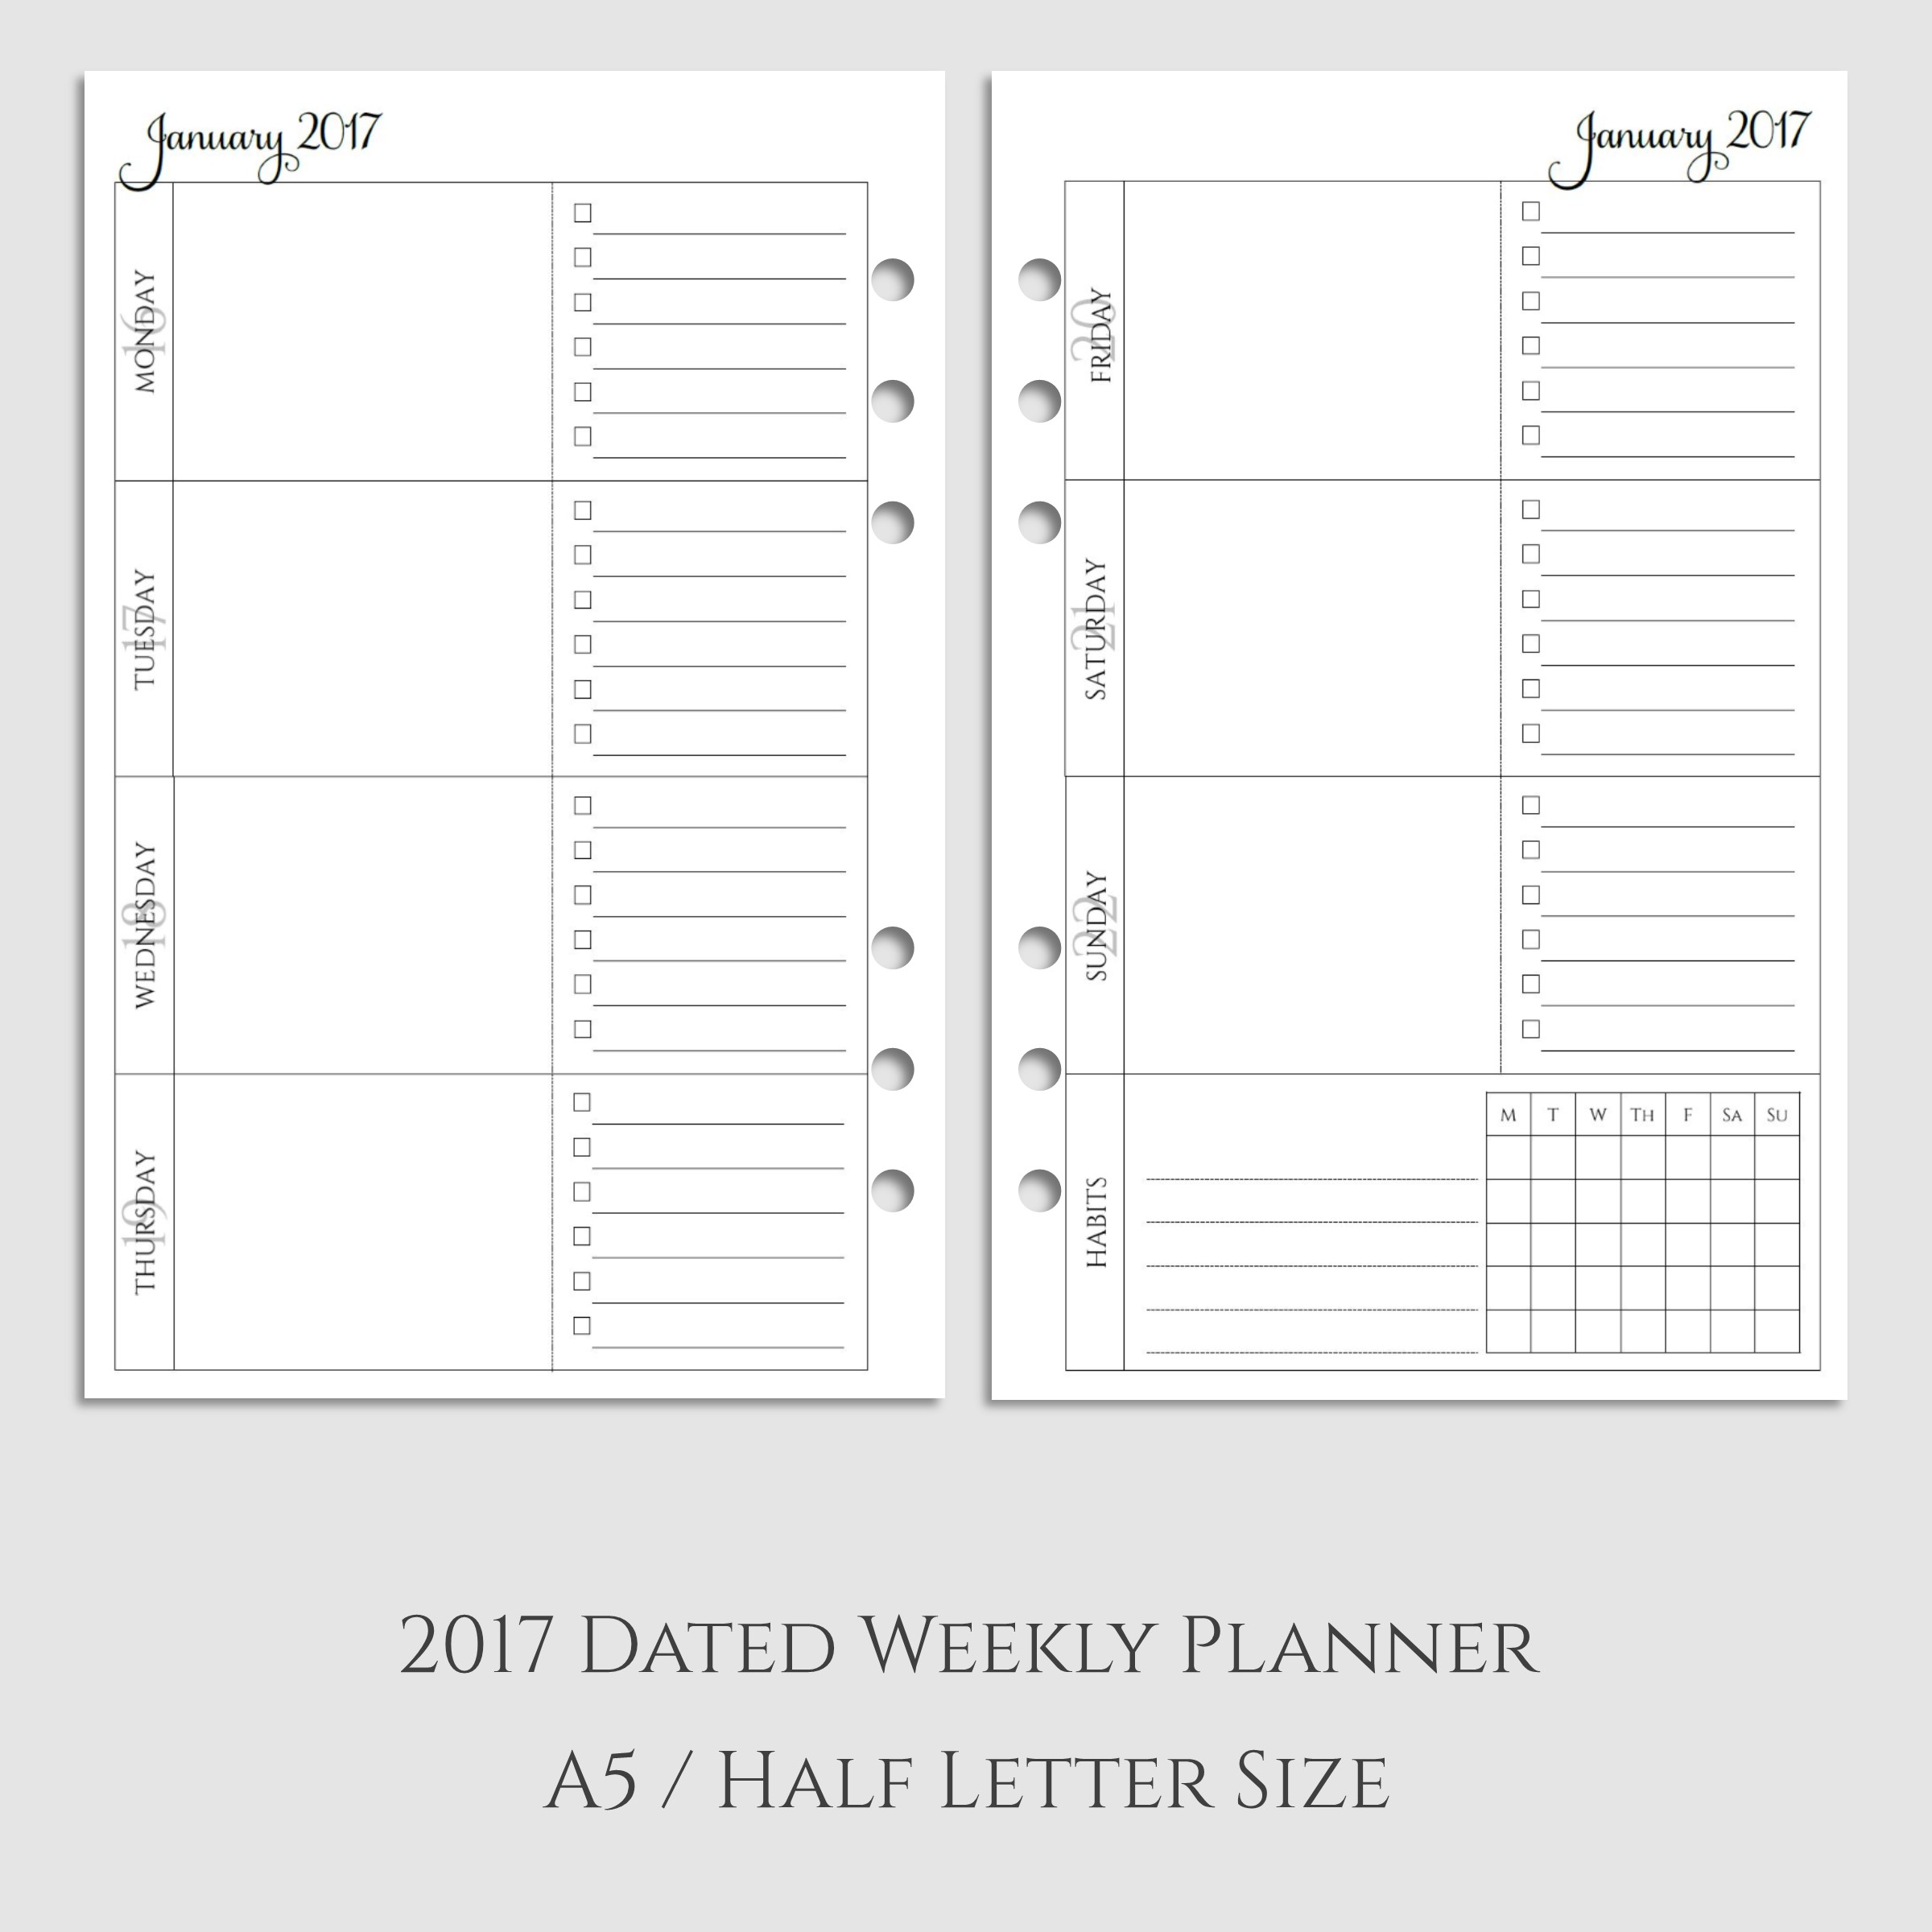 2017 Weekly Planner Inserts with Habit Tracker